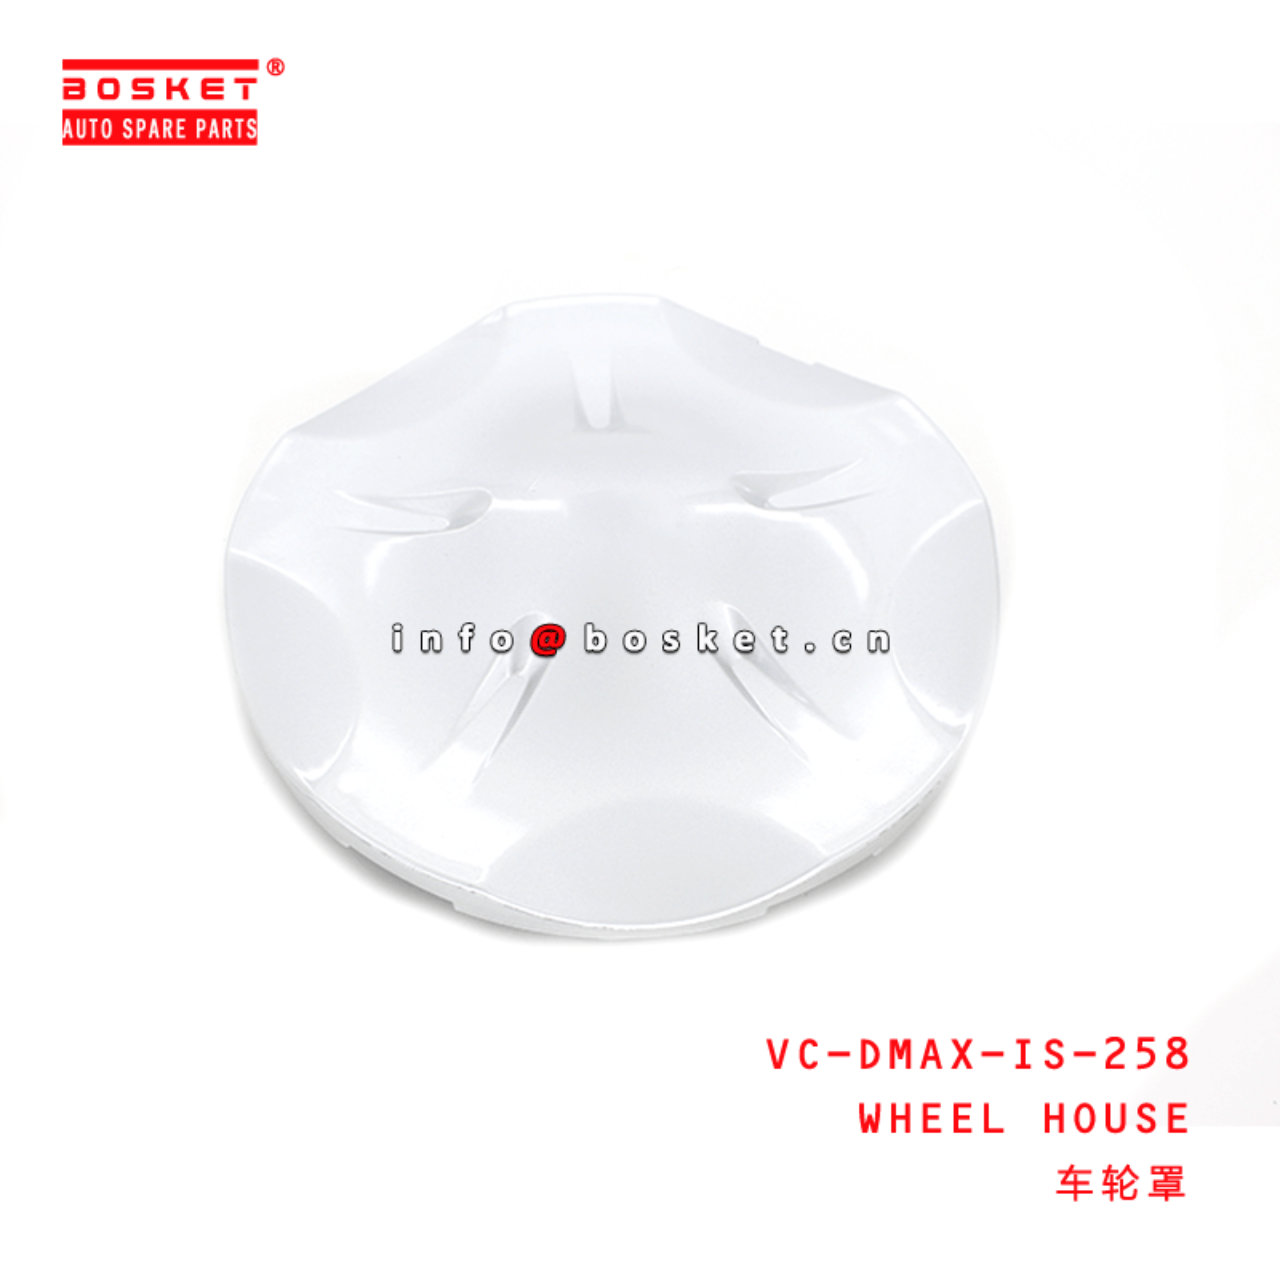 VC-DMAX-IS-258 Wheel House Suitable for ISUZU D-M...